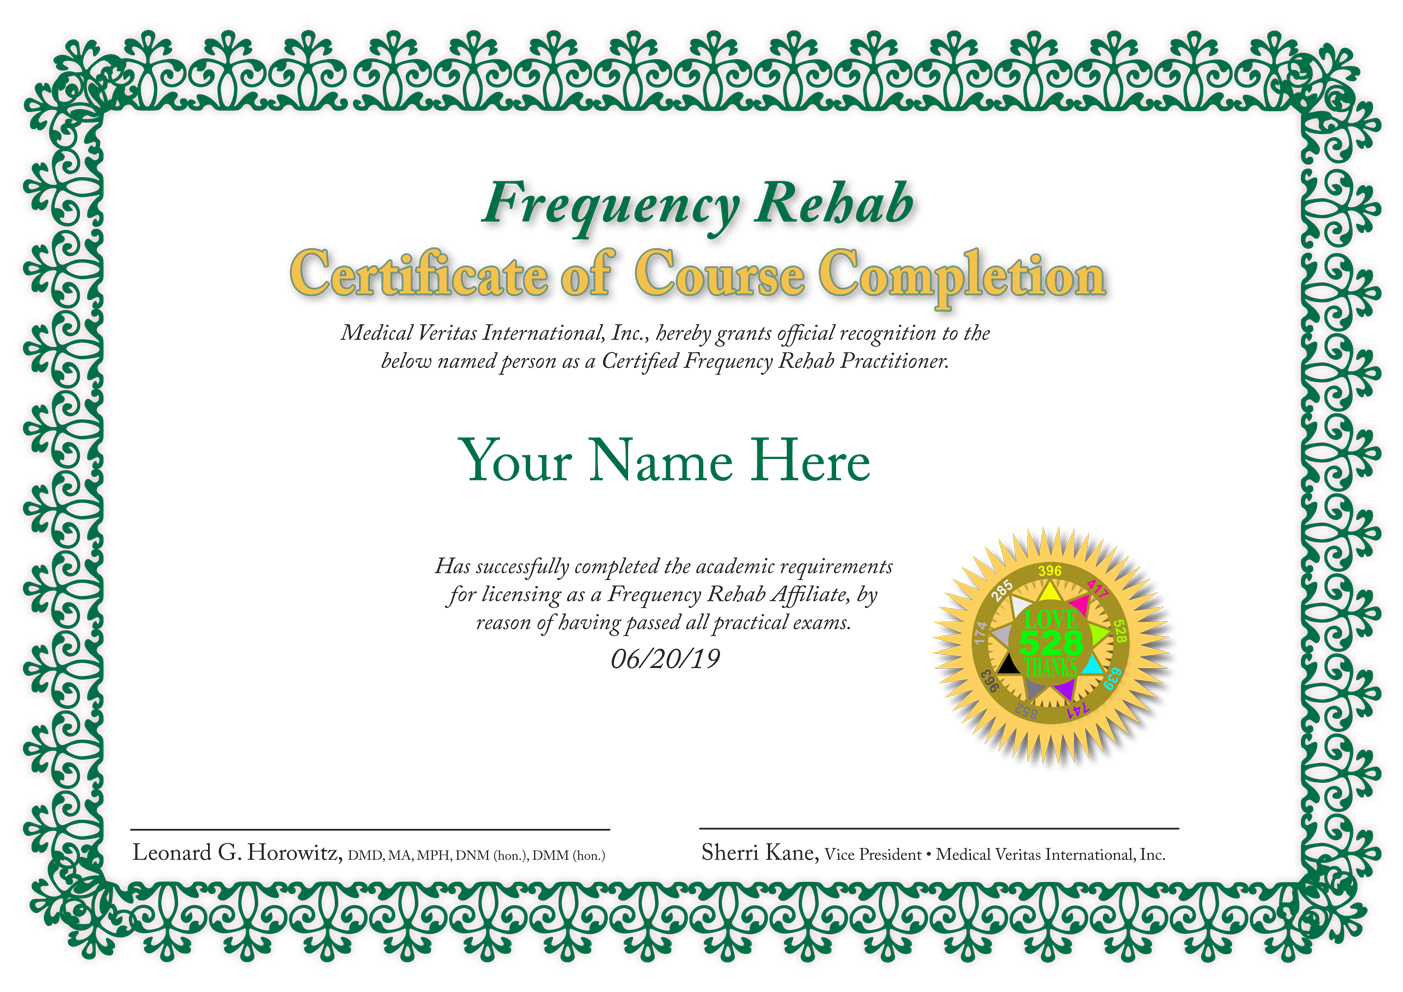 Frequency Rehab Franchise